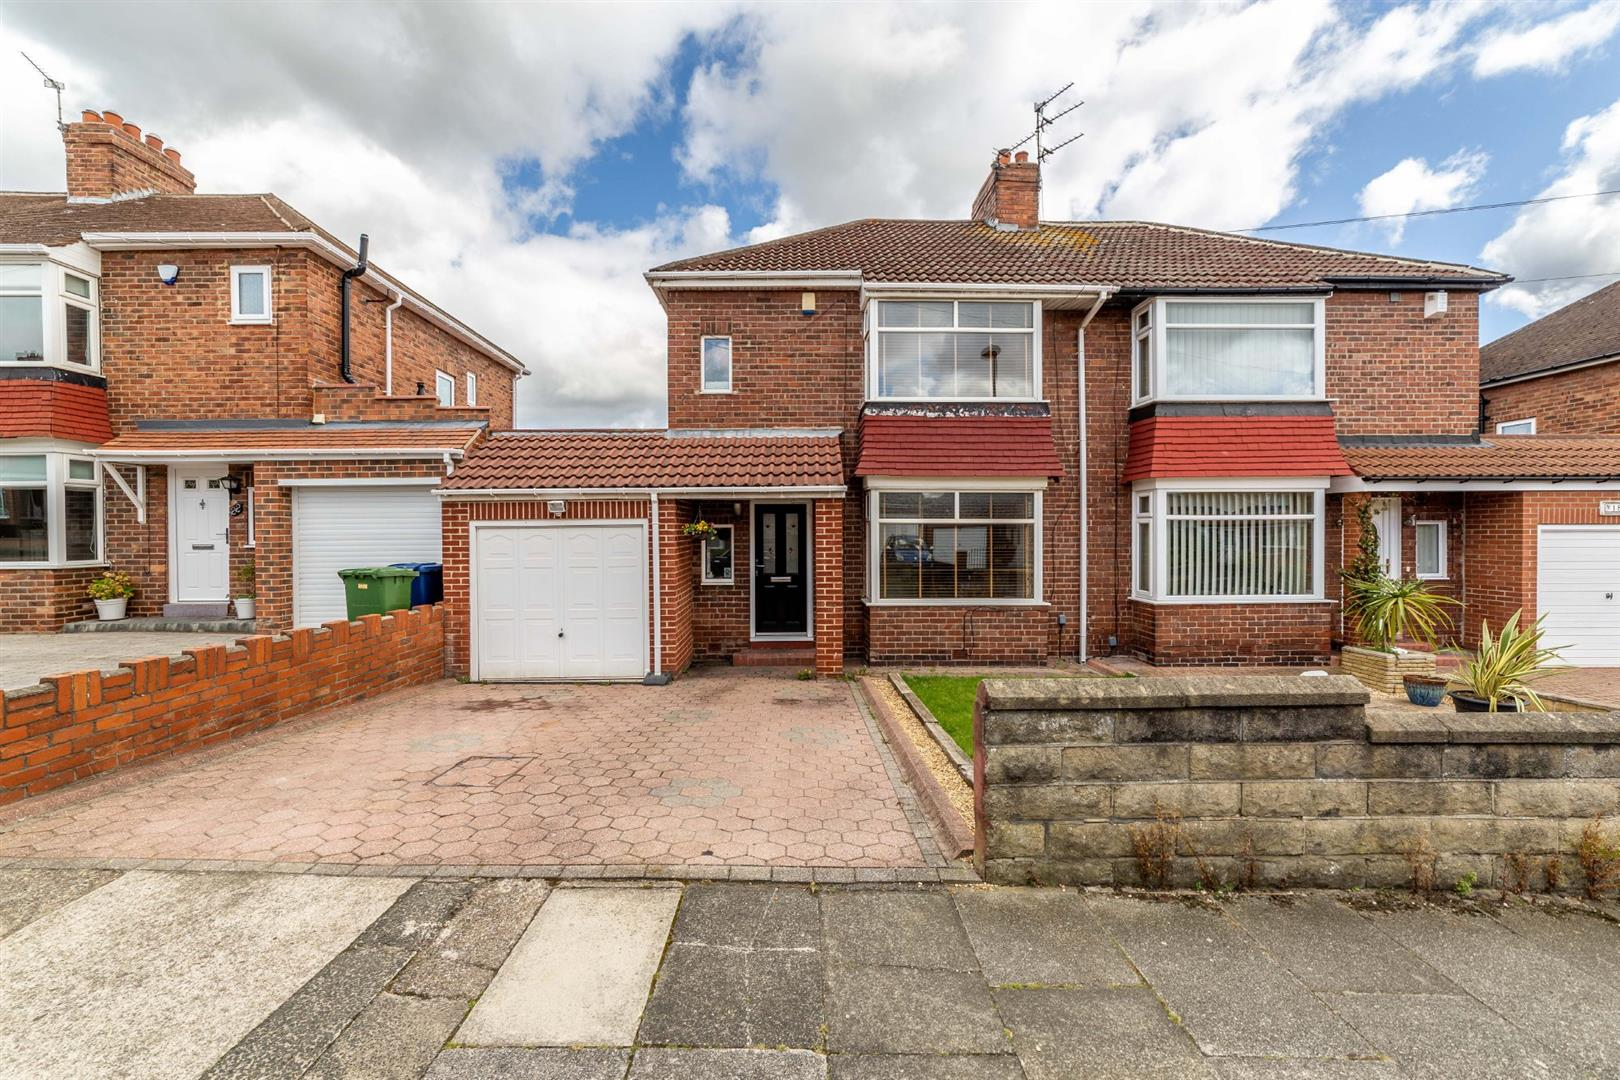 2 bed semi-detached house for sale in Newcastle Upon Tyne, NE7 7RT, NE7